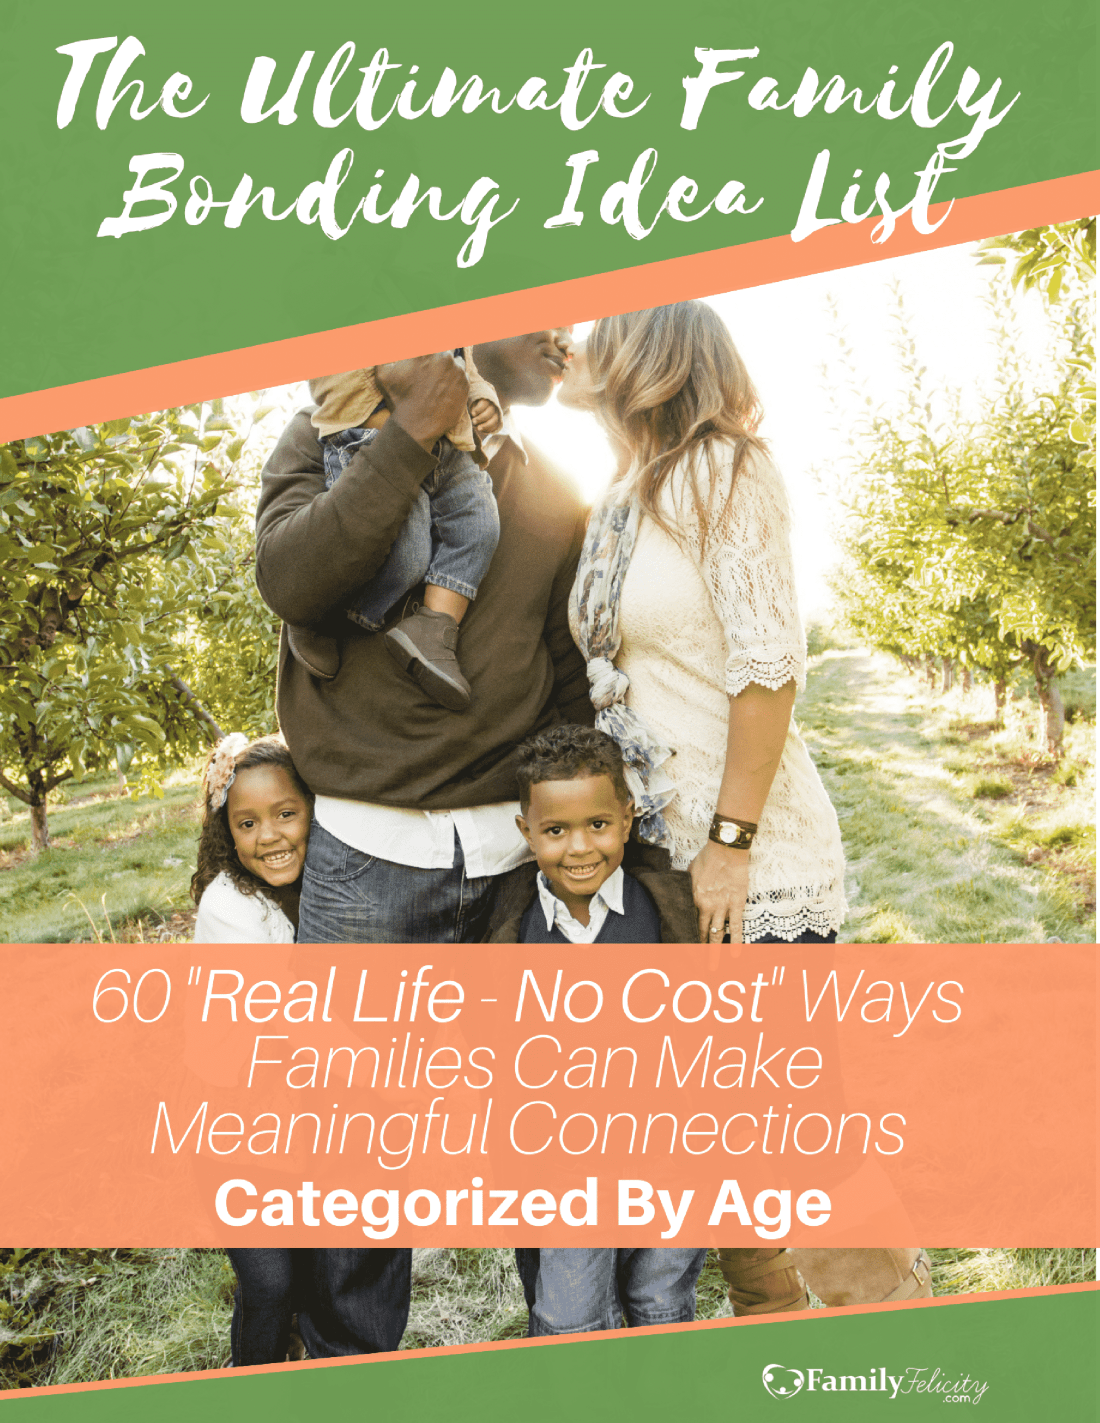 The Ultimate Family Bonding Idea List By Age